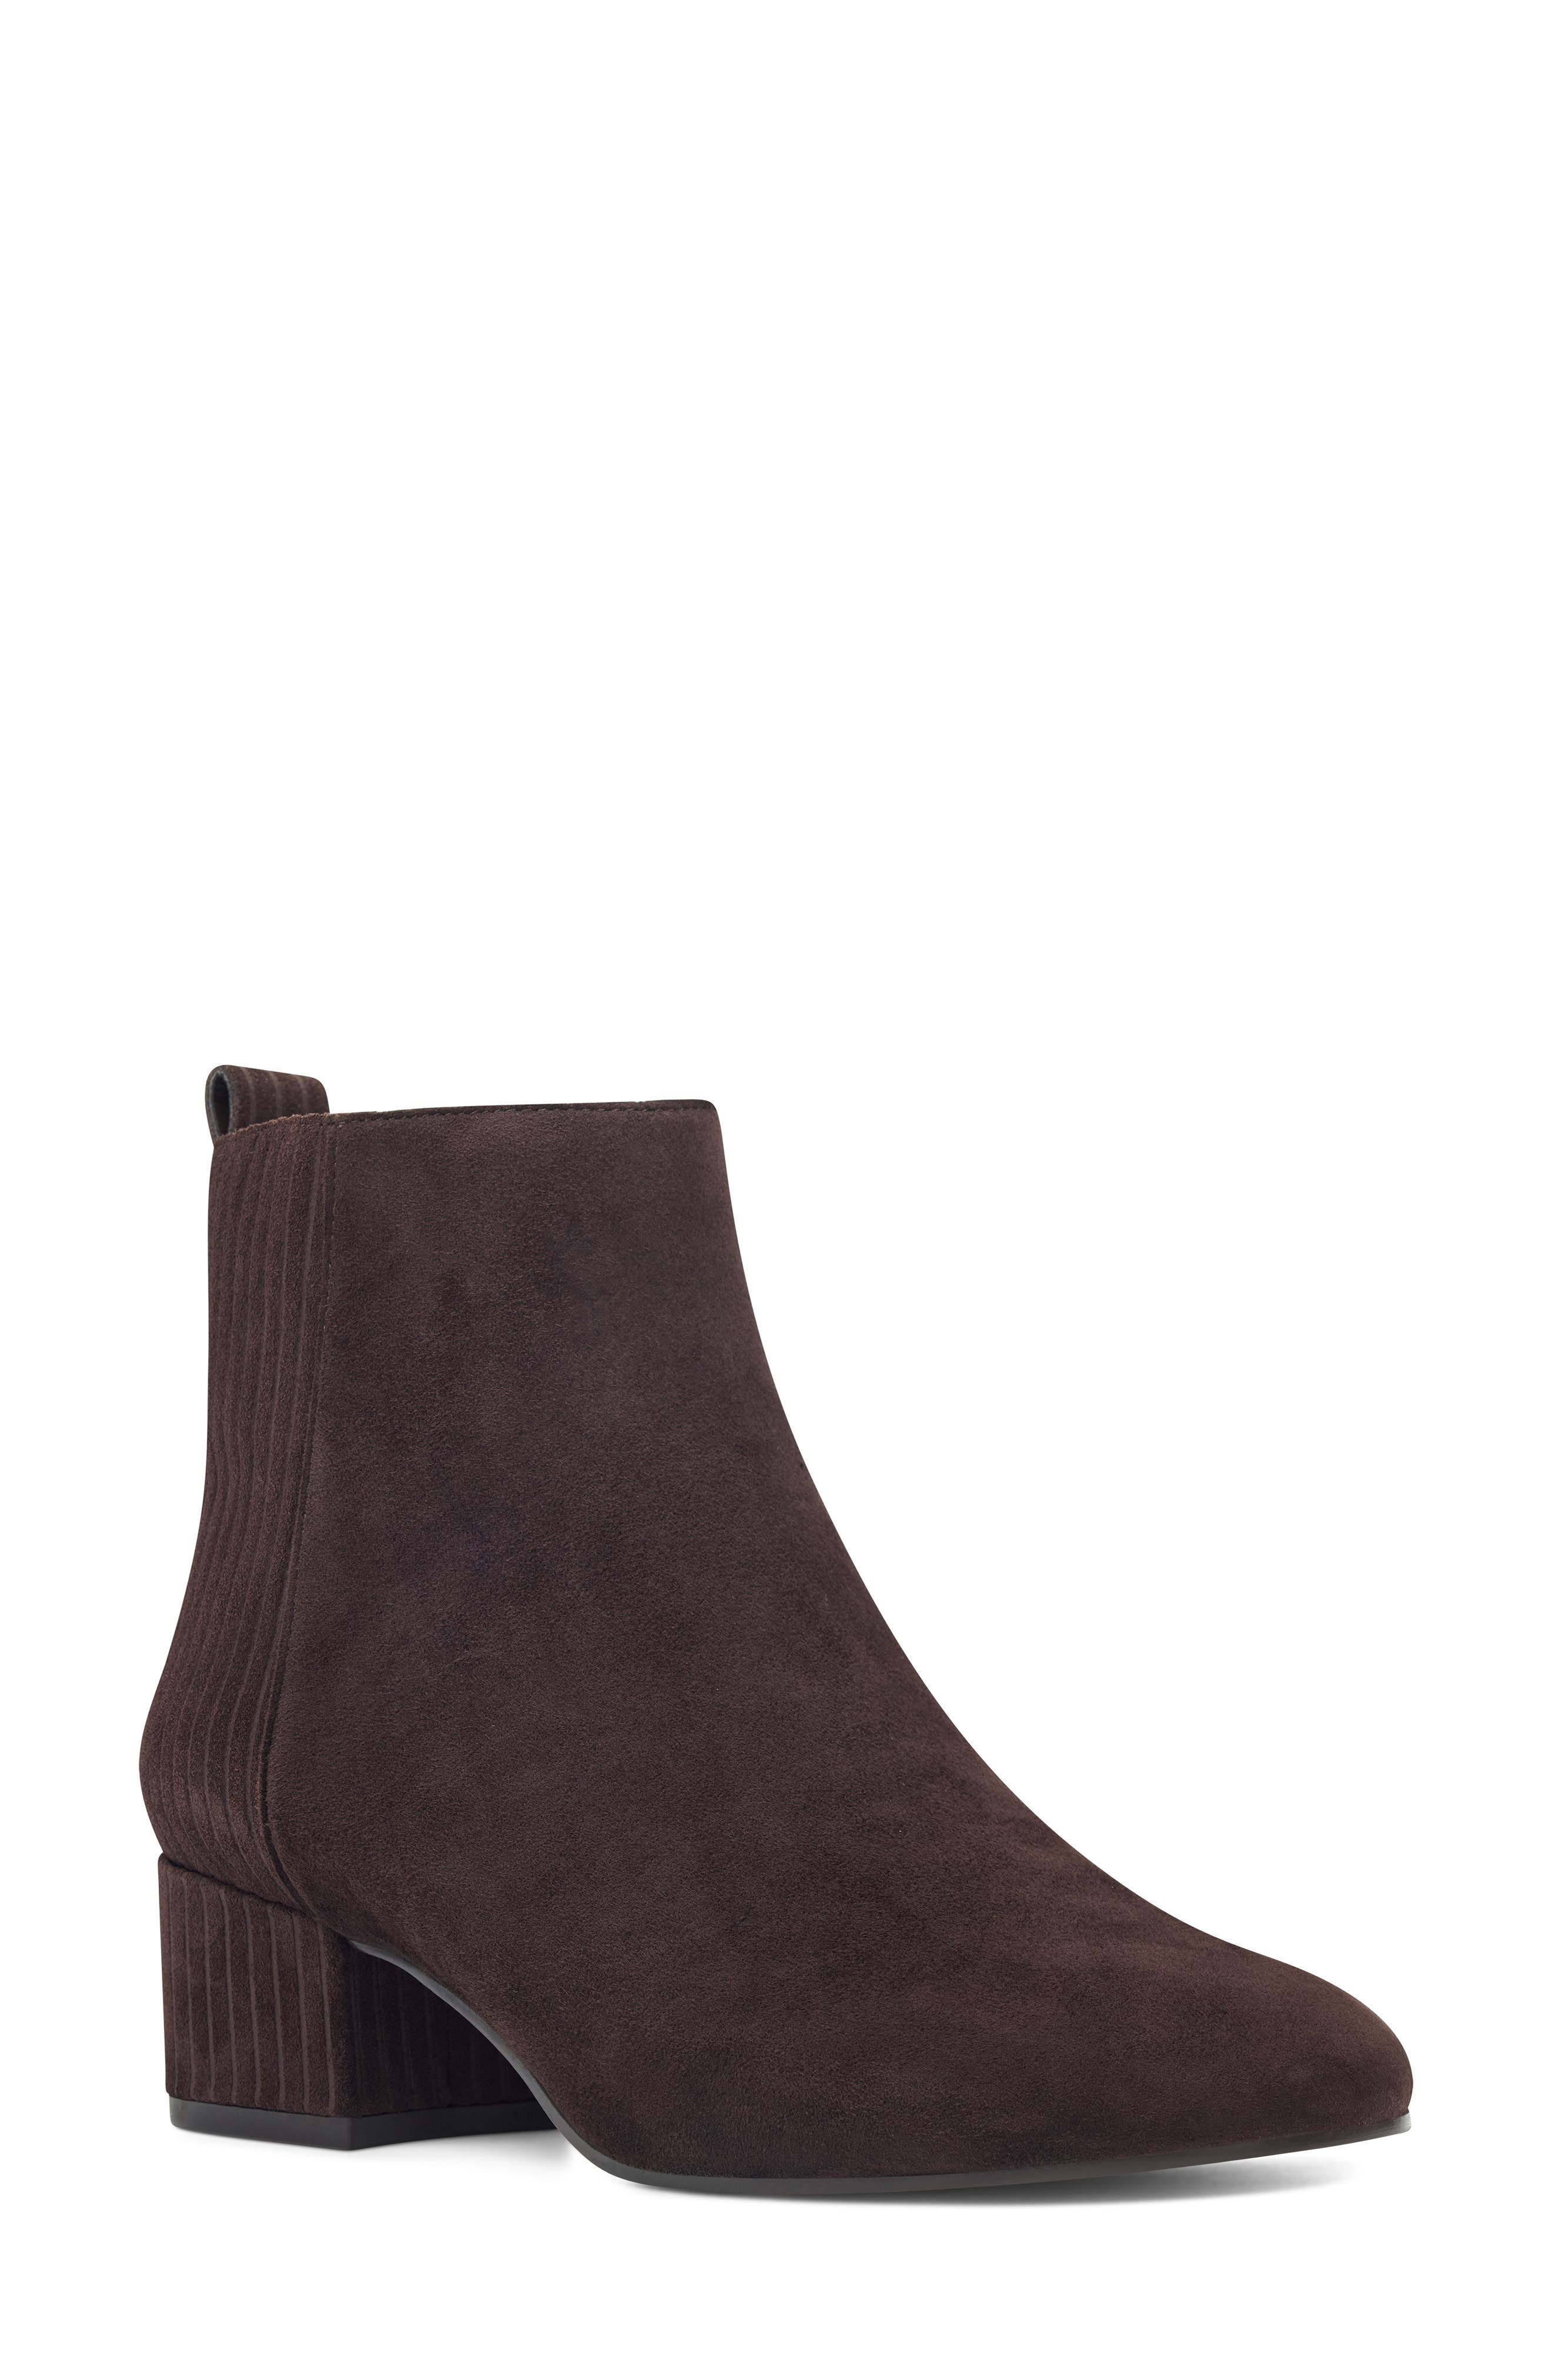 Nine West Lamonto Striped Bootie- Brown